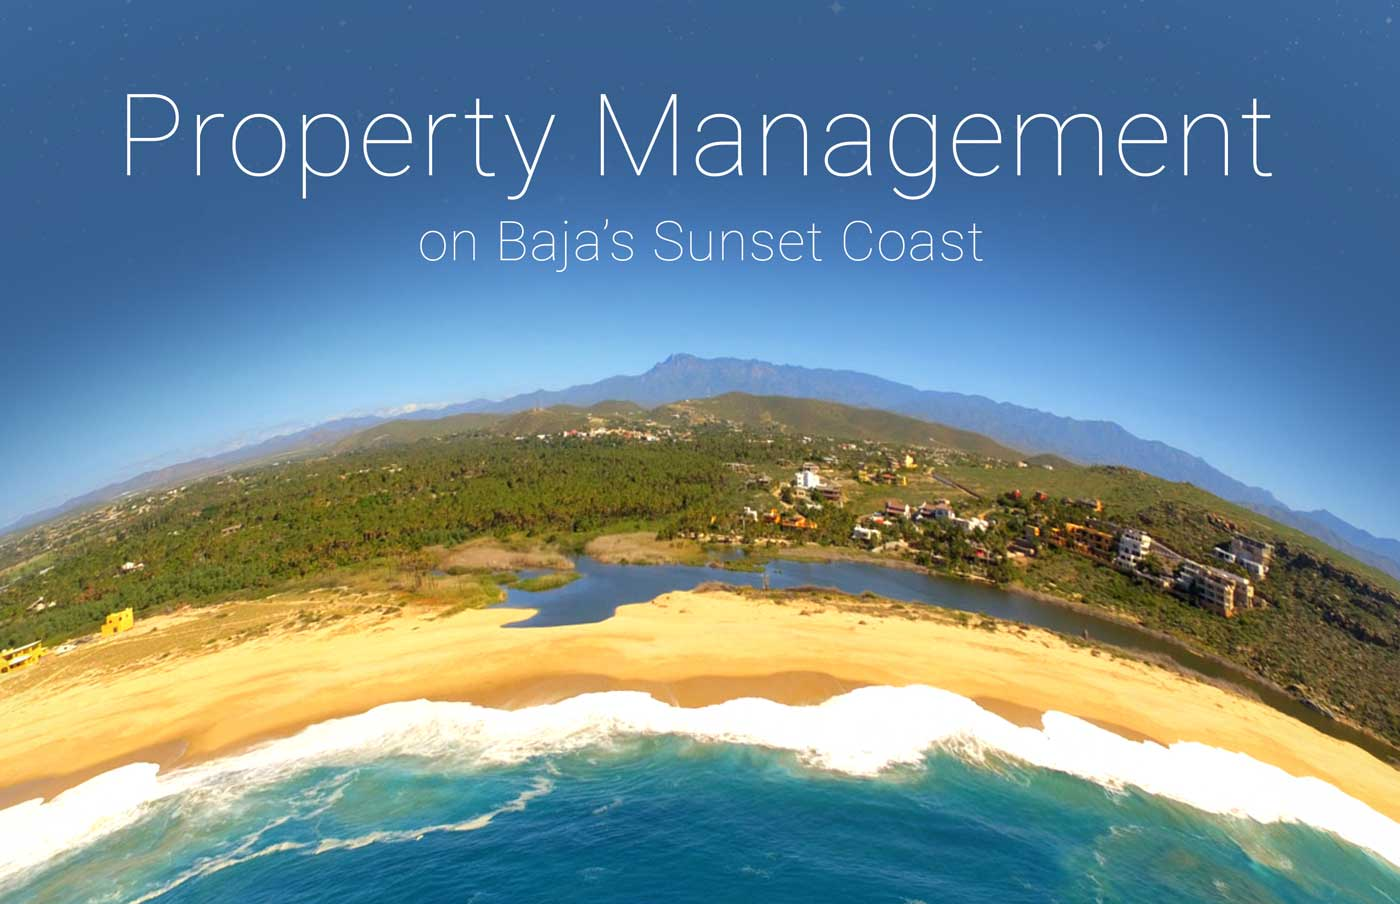 Property Management Cover Image